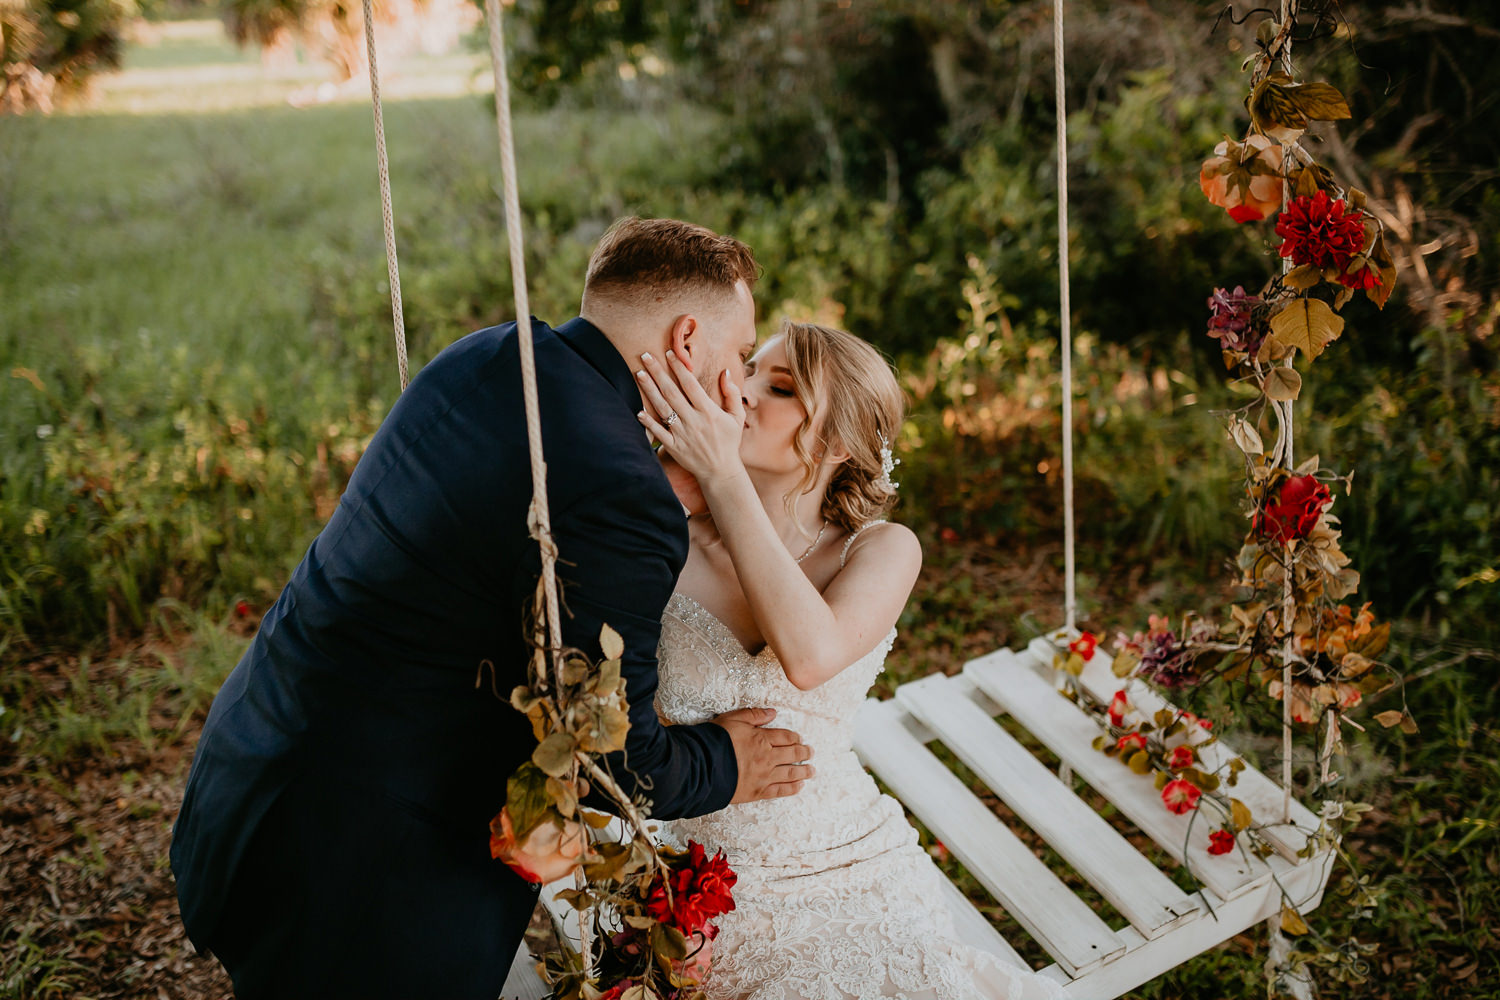 overhead shot of newlyweds kissing, bride sitting on flowery swing bench